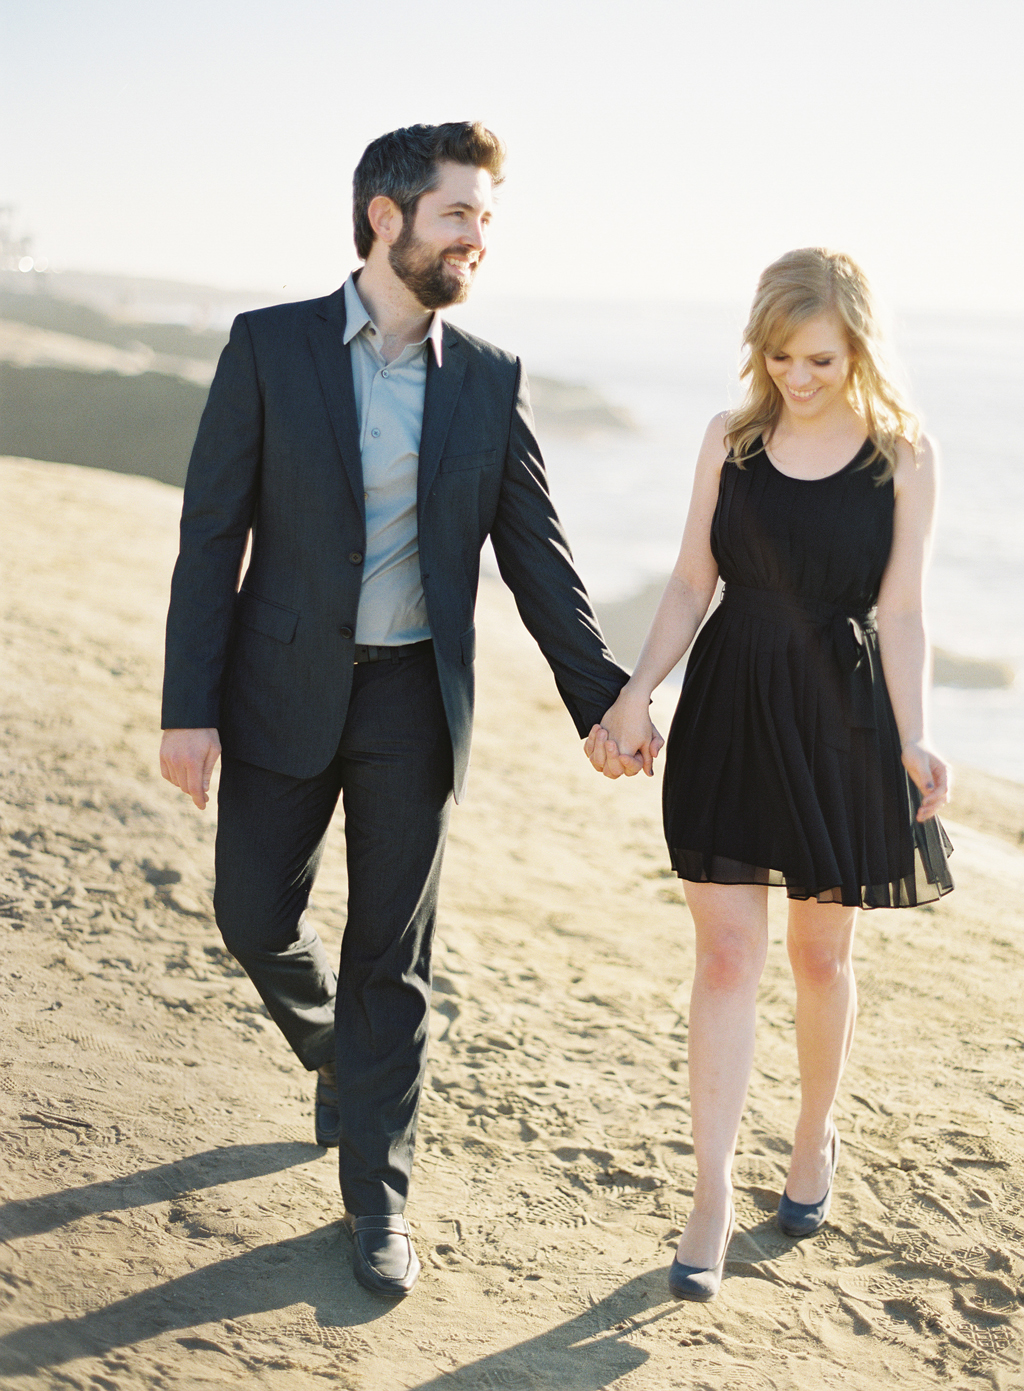 an engaged couple walkes along the coast for their engagement session in southern california with a film photographer.